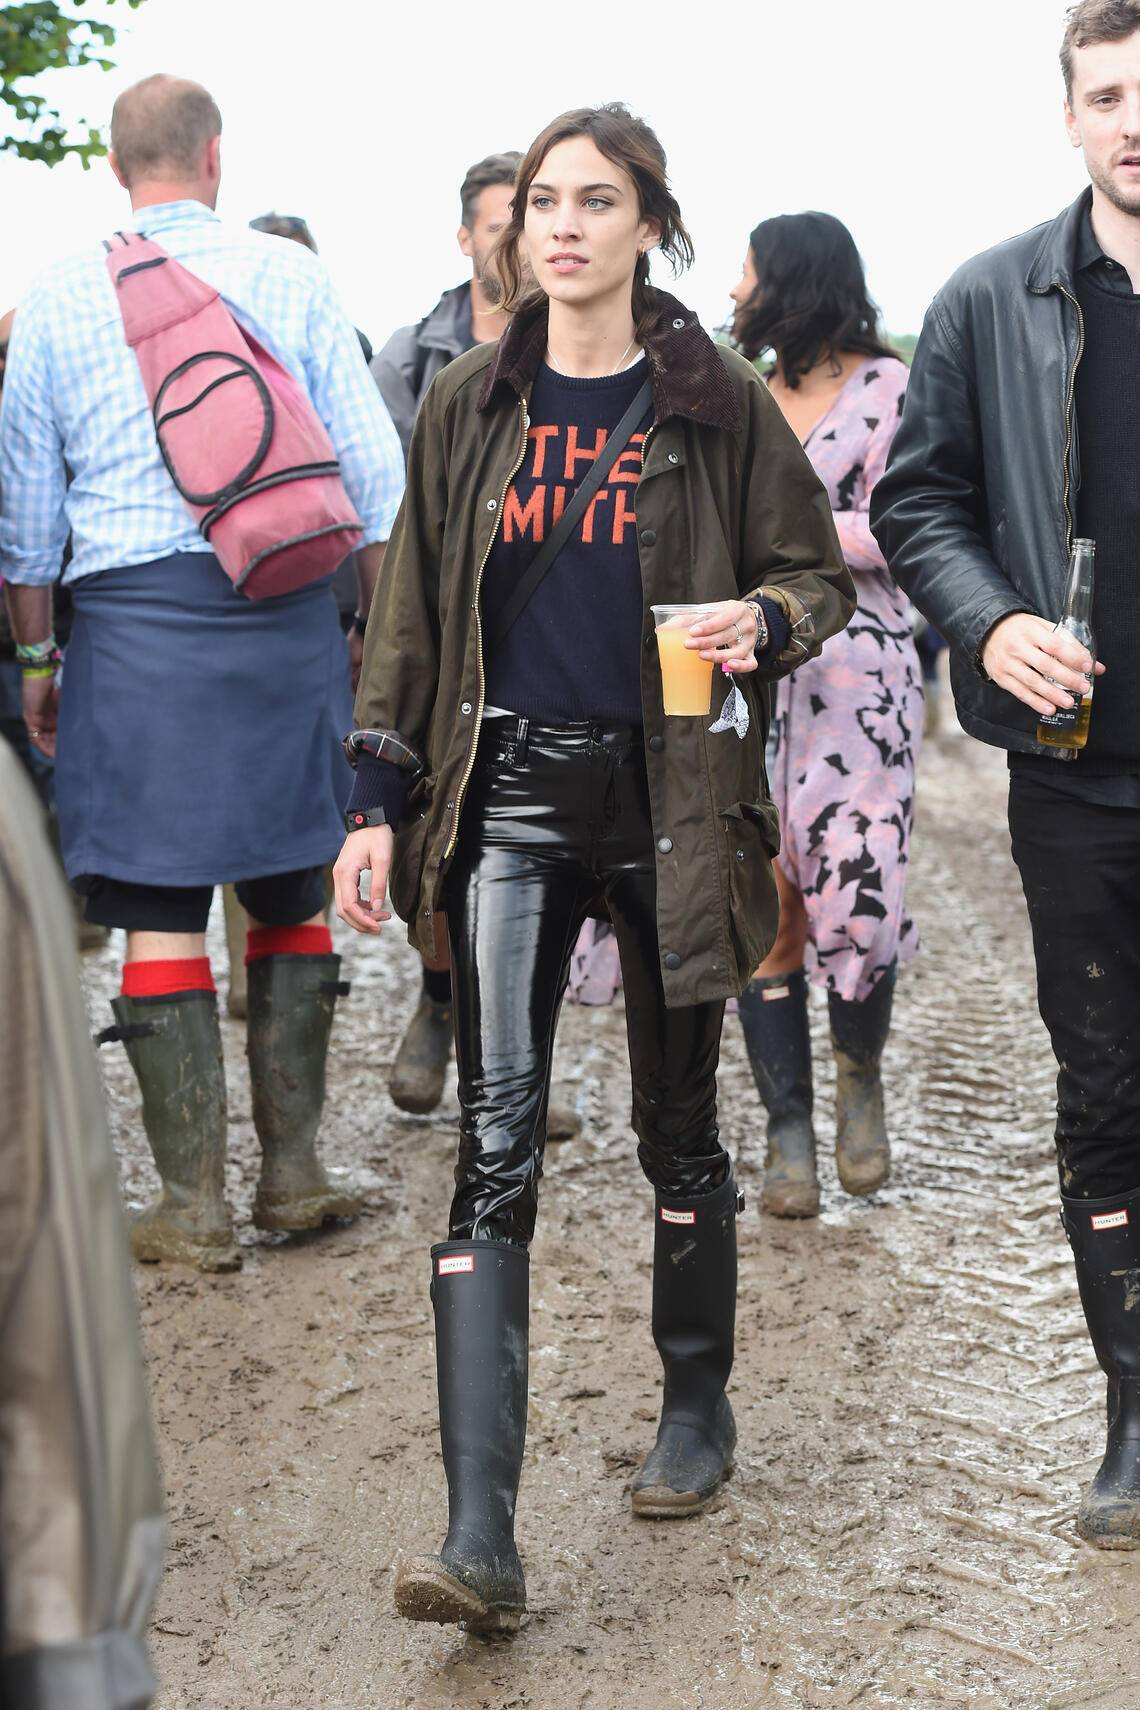 GLASTONBURY, ENGLAND - JUNE 24:  Alexa Chung attends day 1 of Glastonbury Festival on June 24, 2016 in Glastonbury, England.  (Photo by David M. Benett/Getty Images)